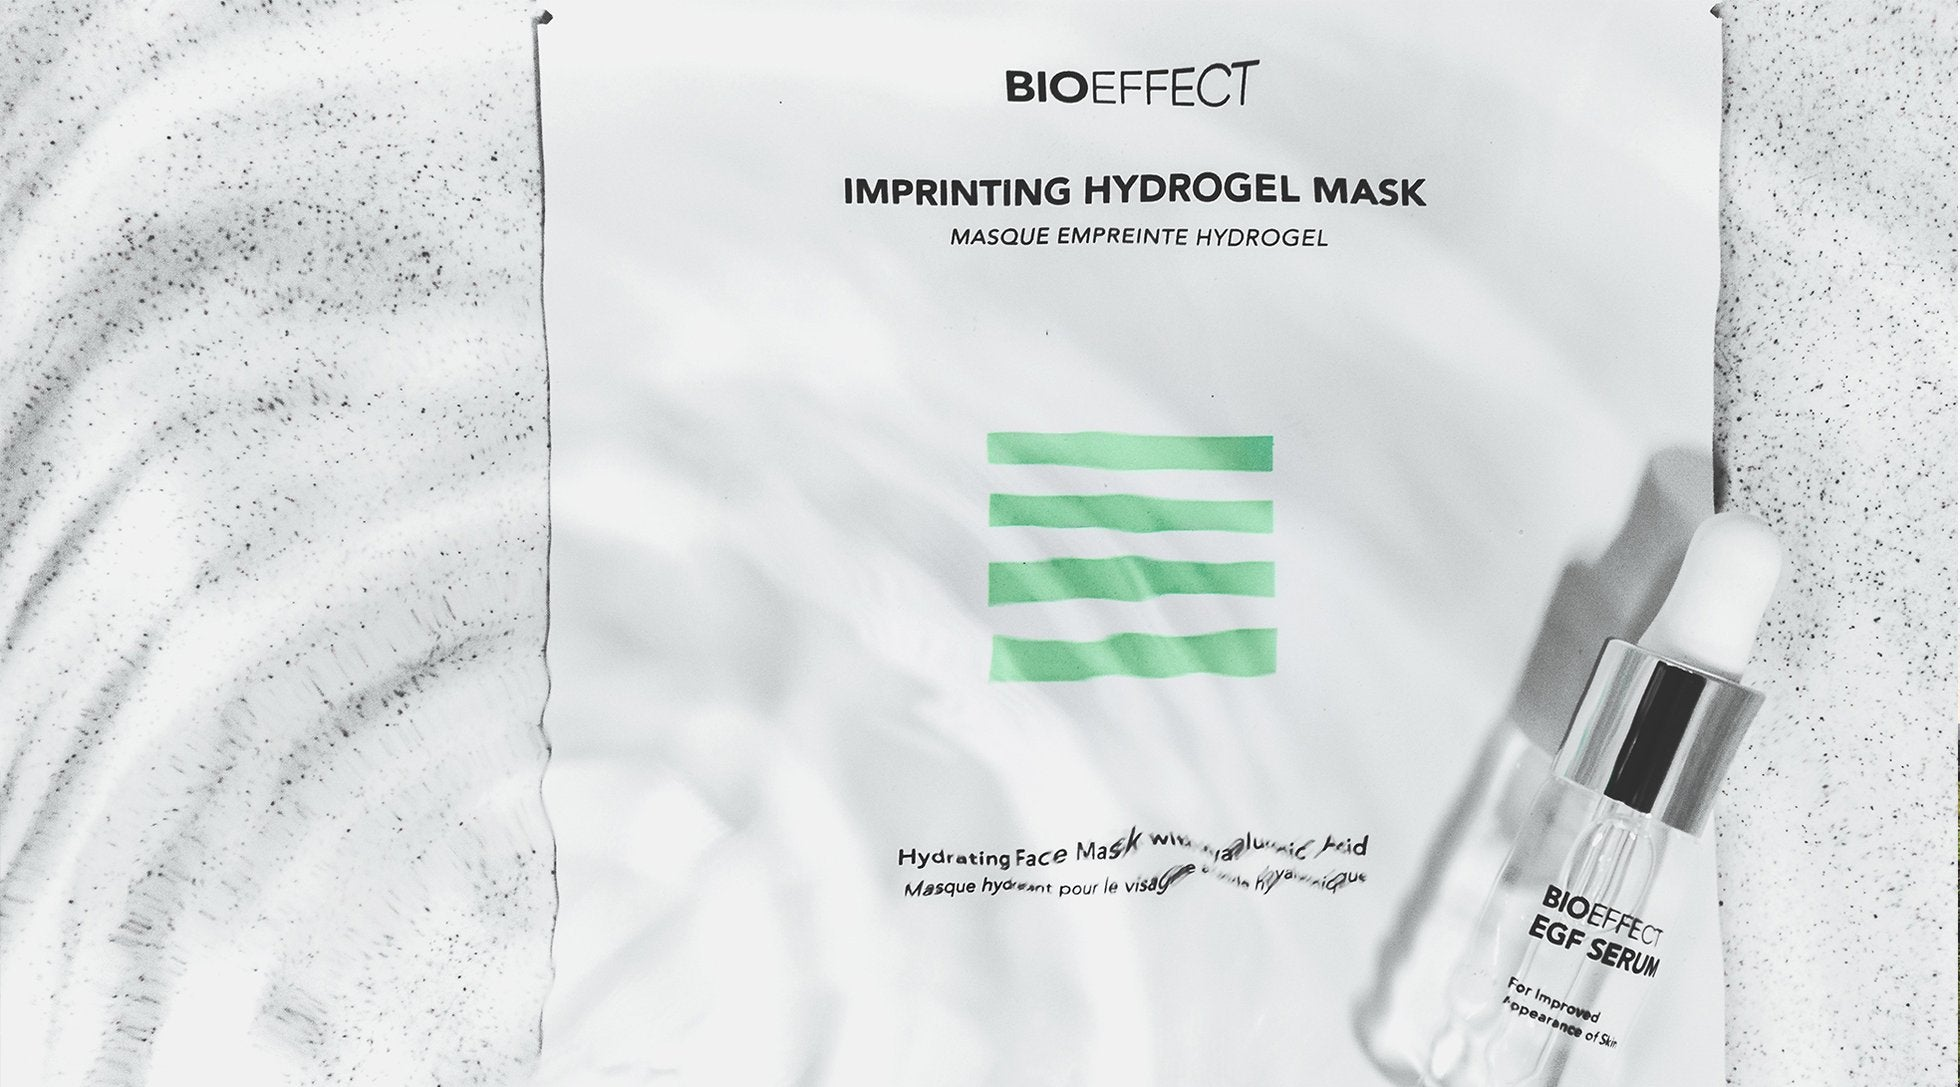 Imprinting Hydrogel Mask - Supercharge Your EGF Serums